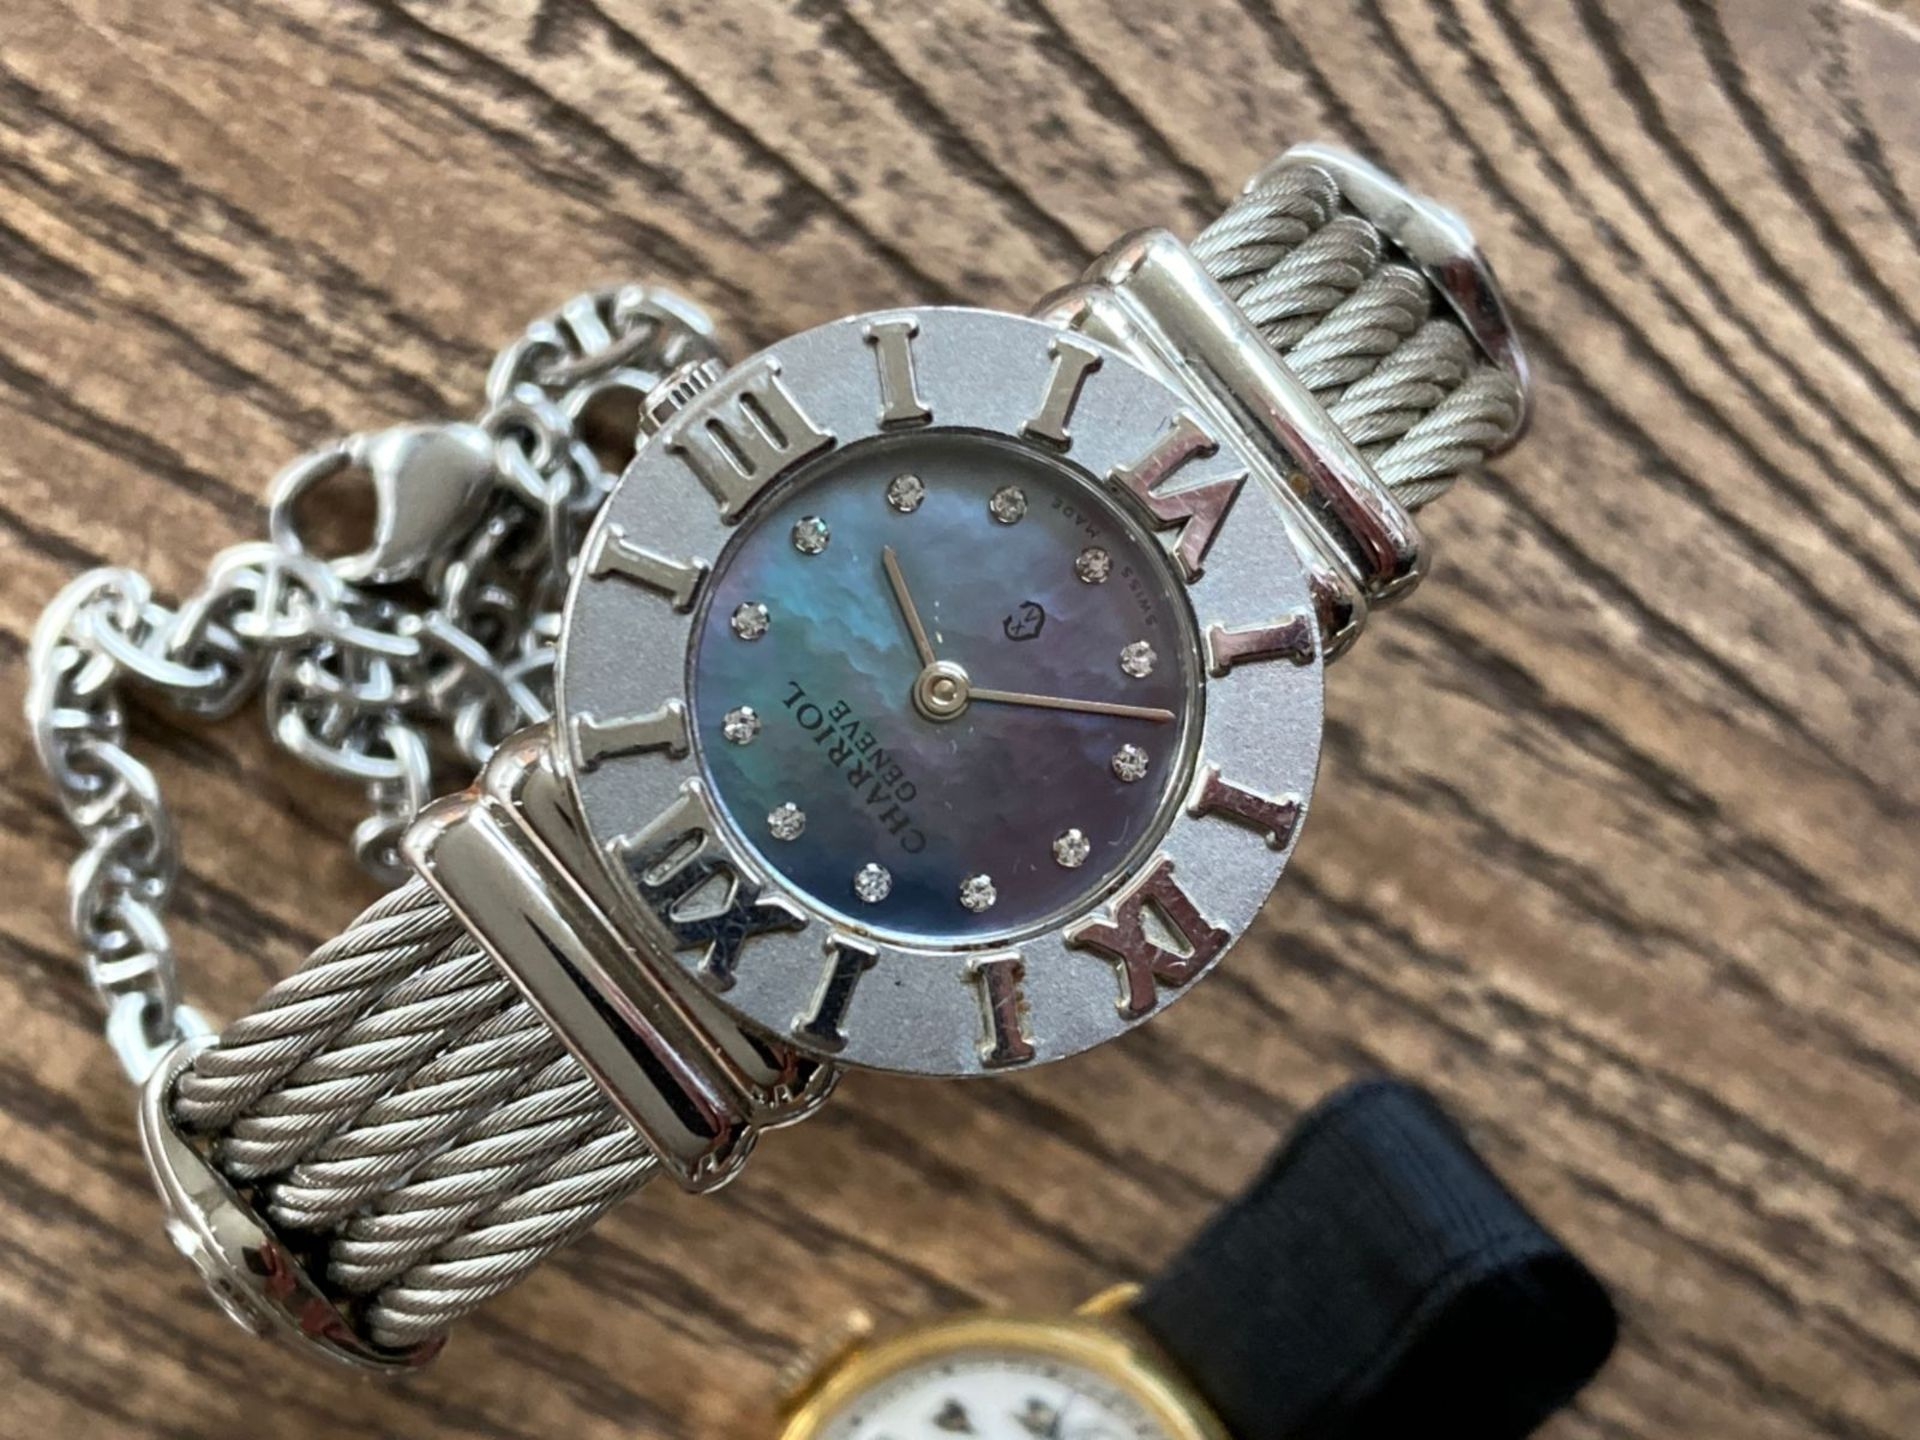 MIXED WATCHES INC MAURICE LACROIX STEEL AND GOLD, CHARRIOL DIAMOND SET ETC - Image 3 of 3